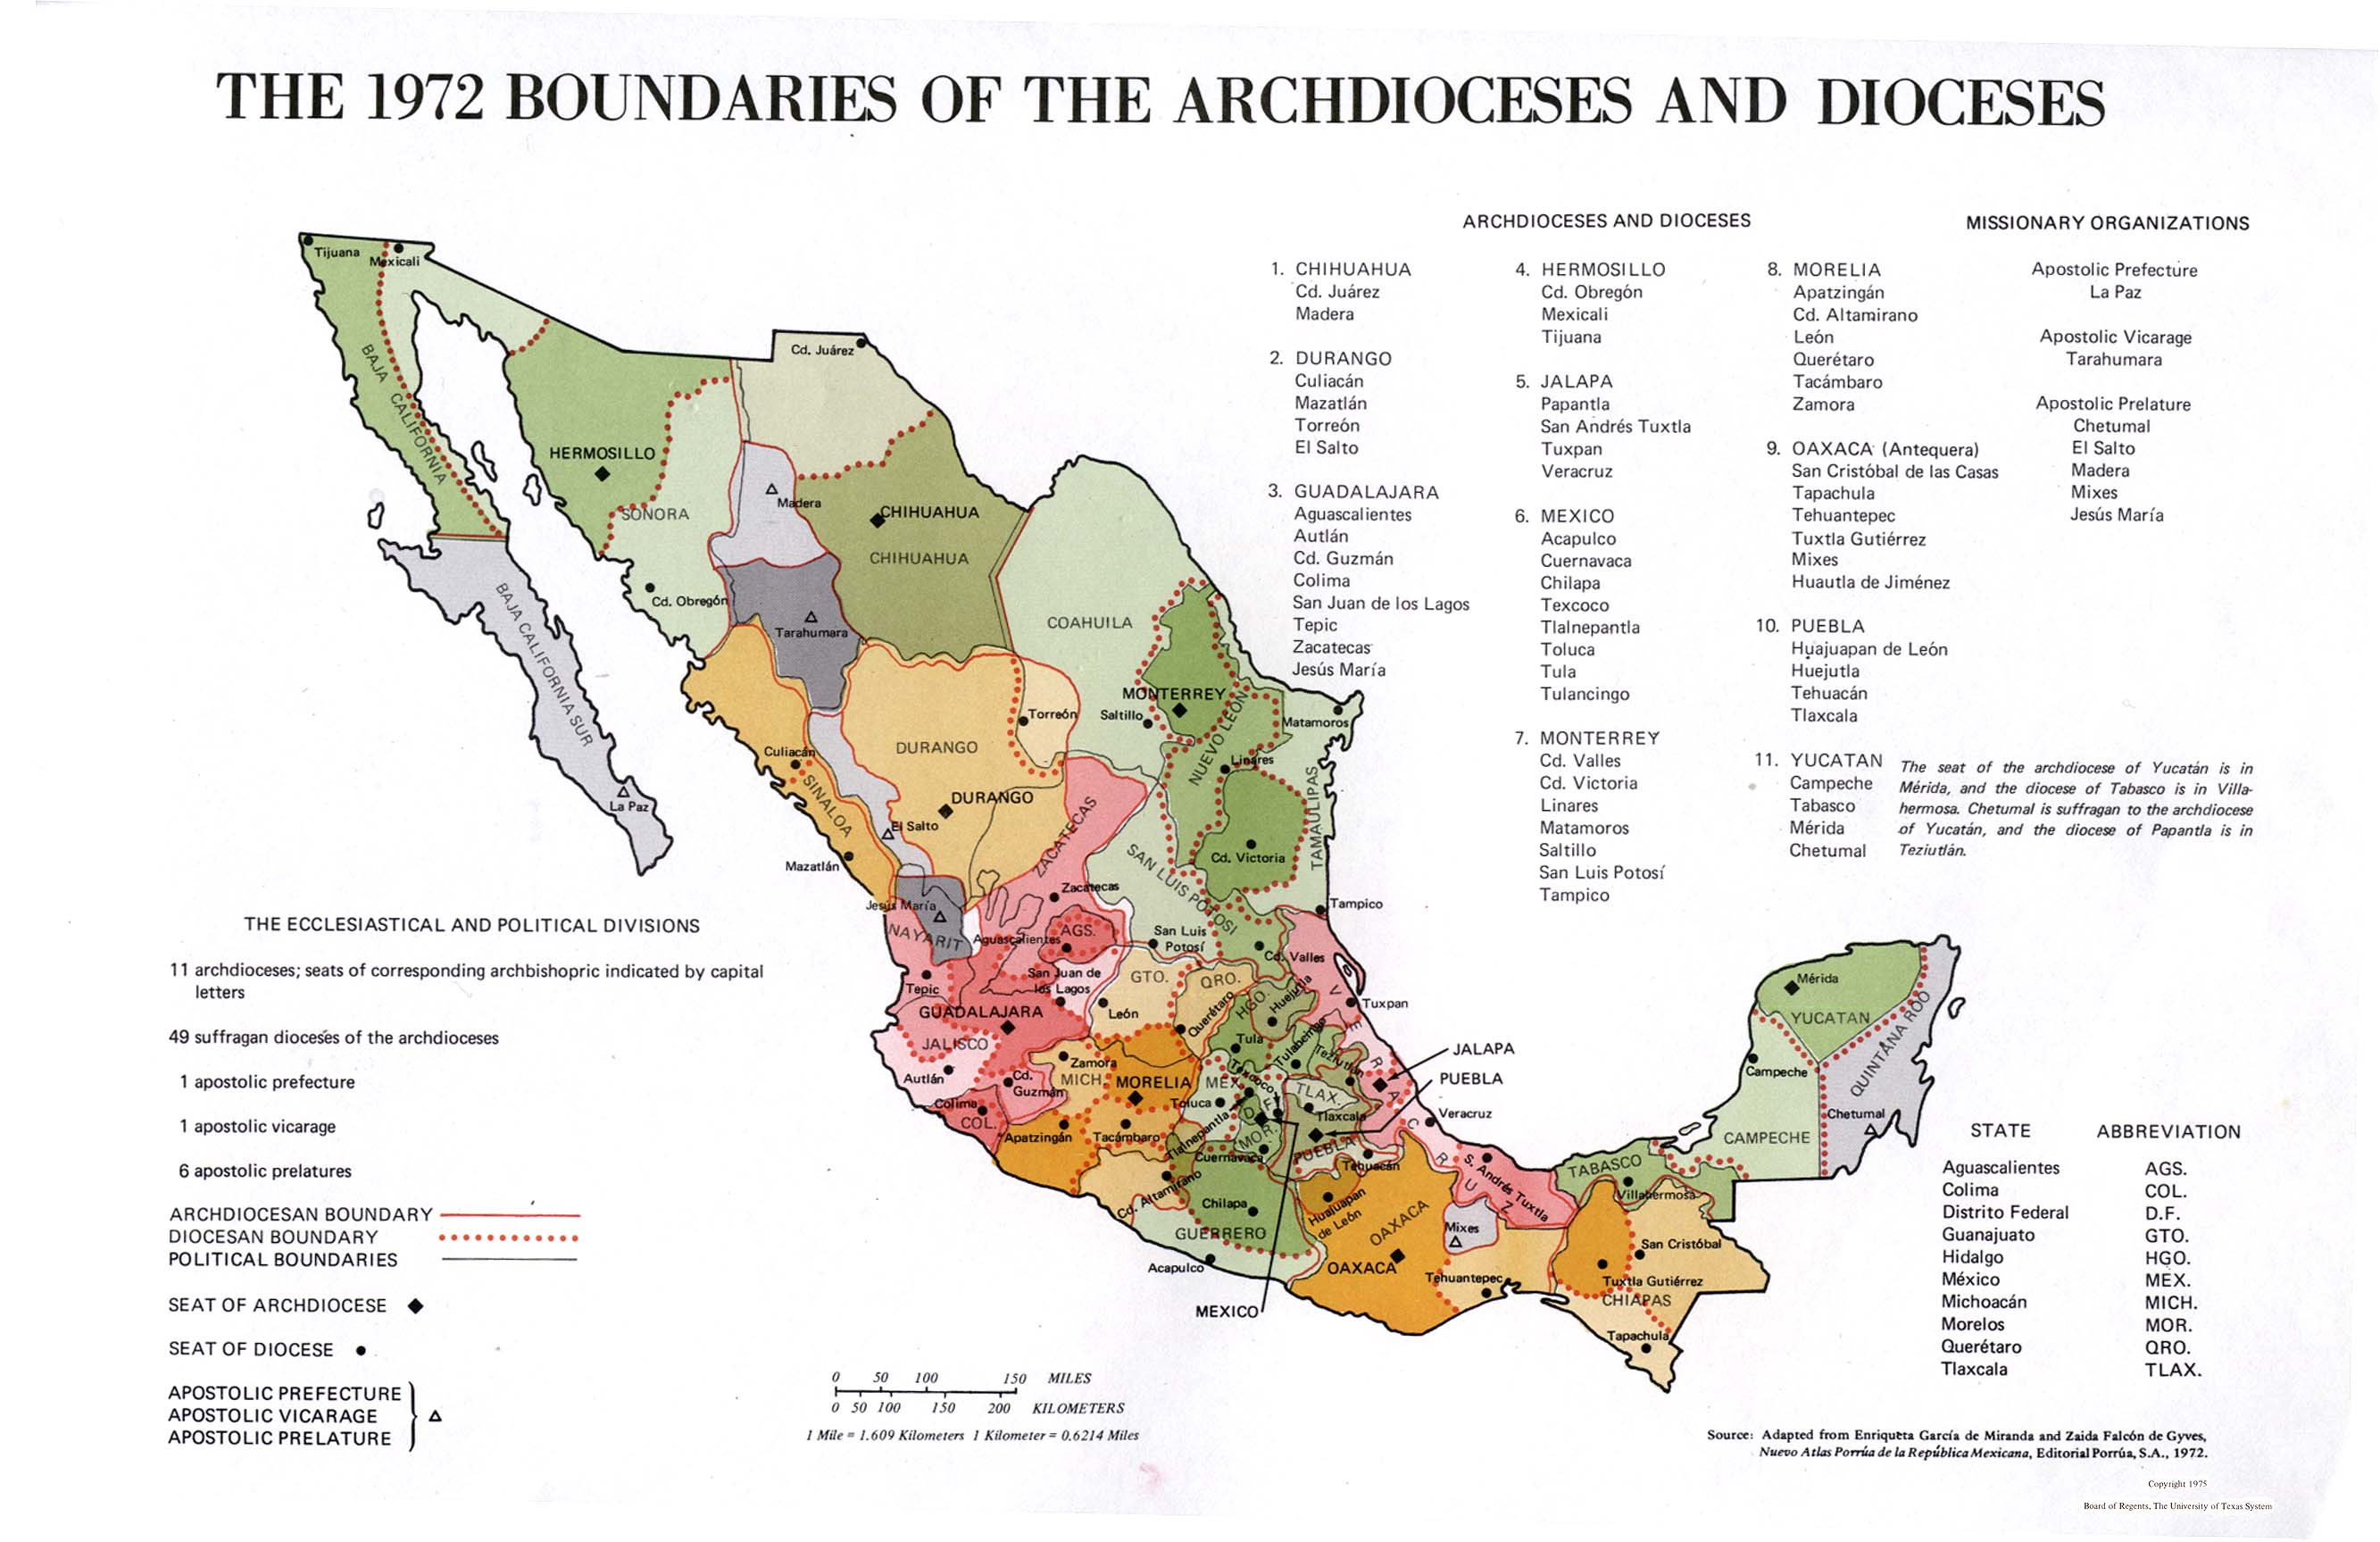 Boundaries of Archdioceses and Dioceses Map, Mexico